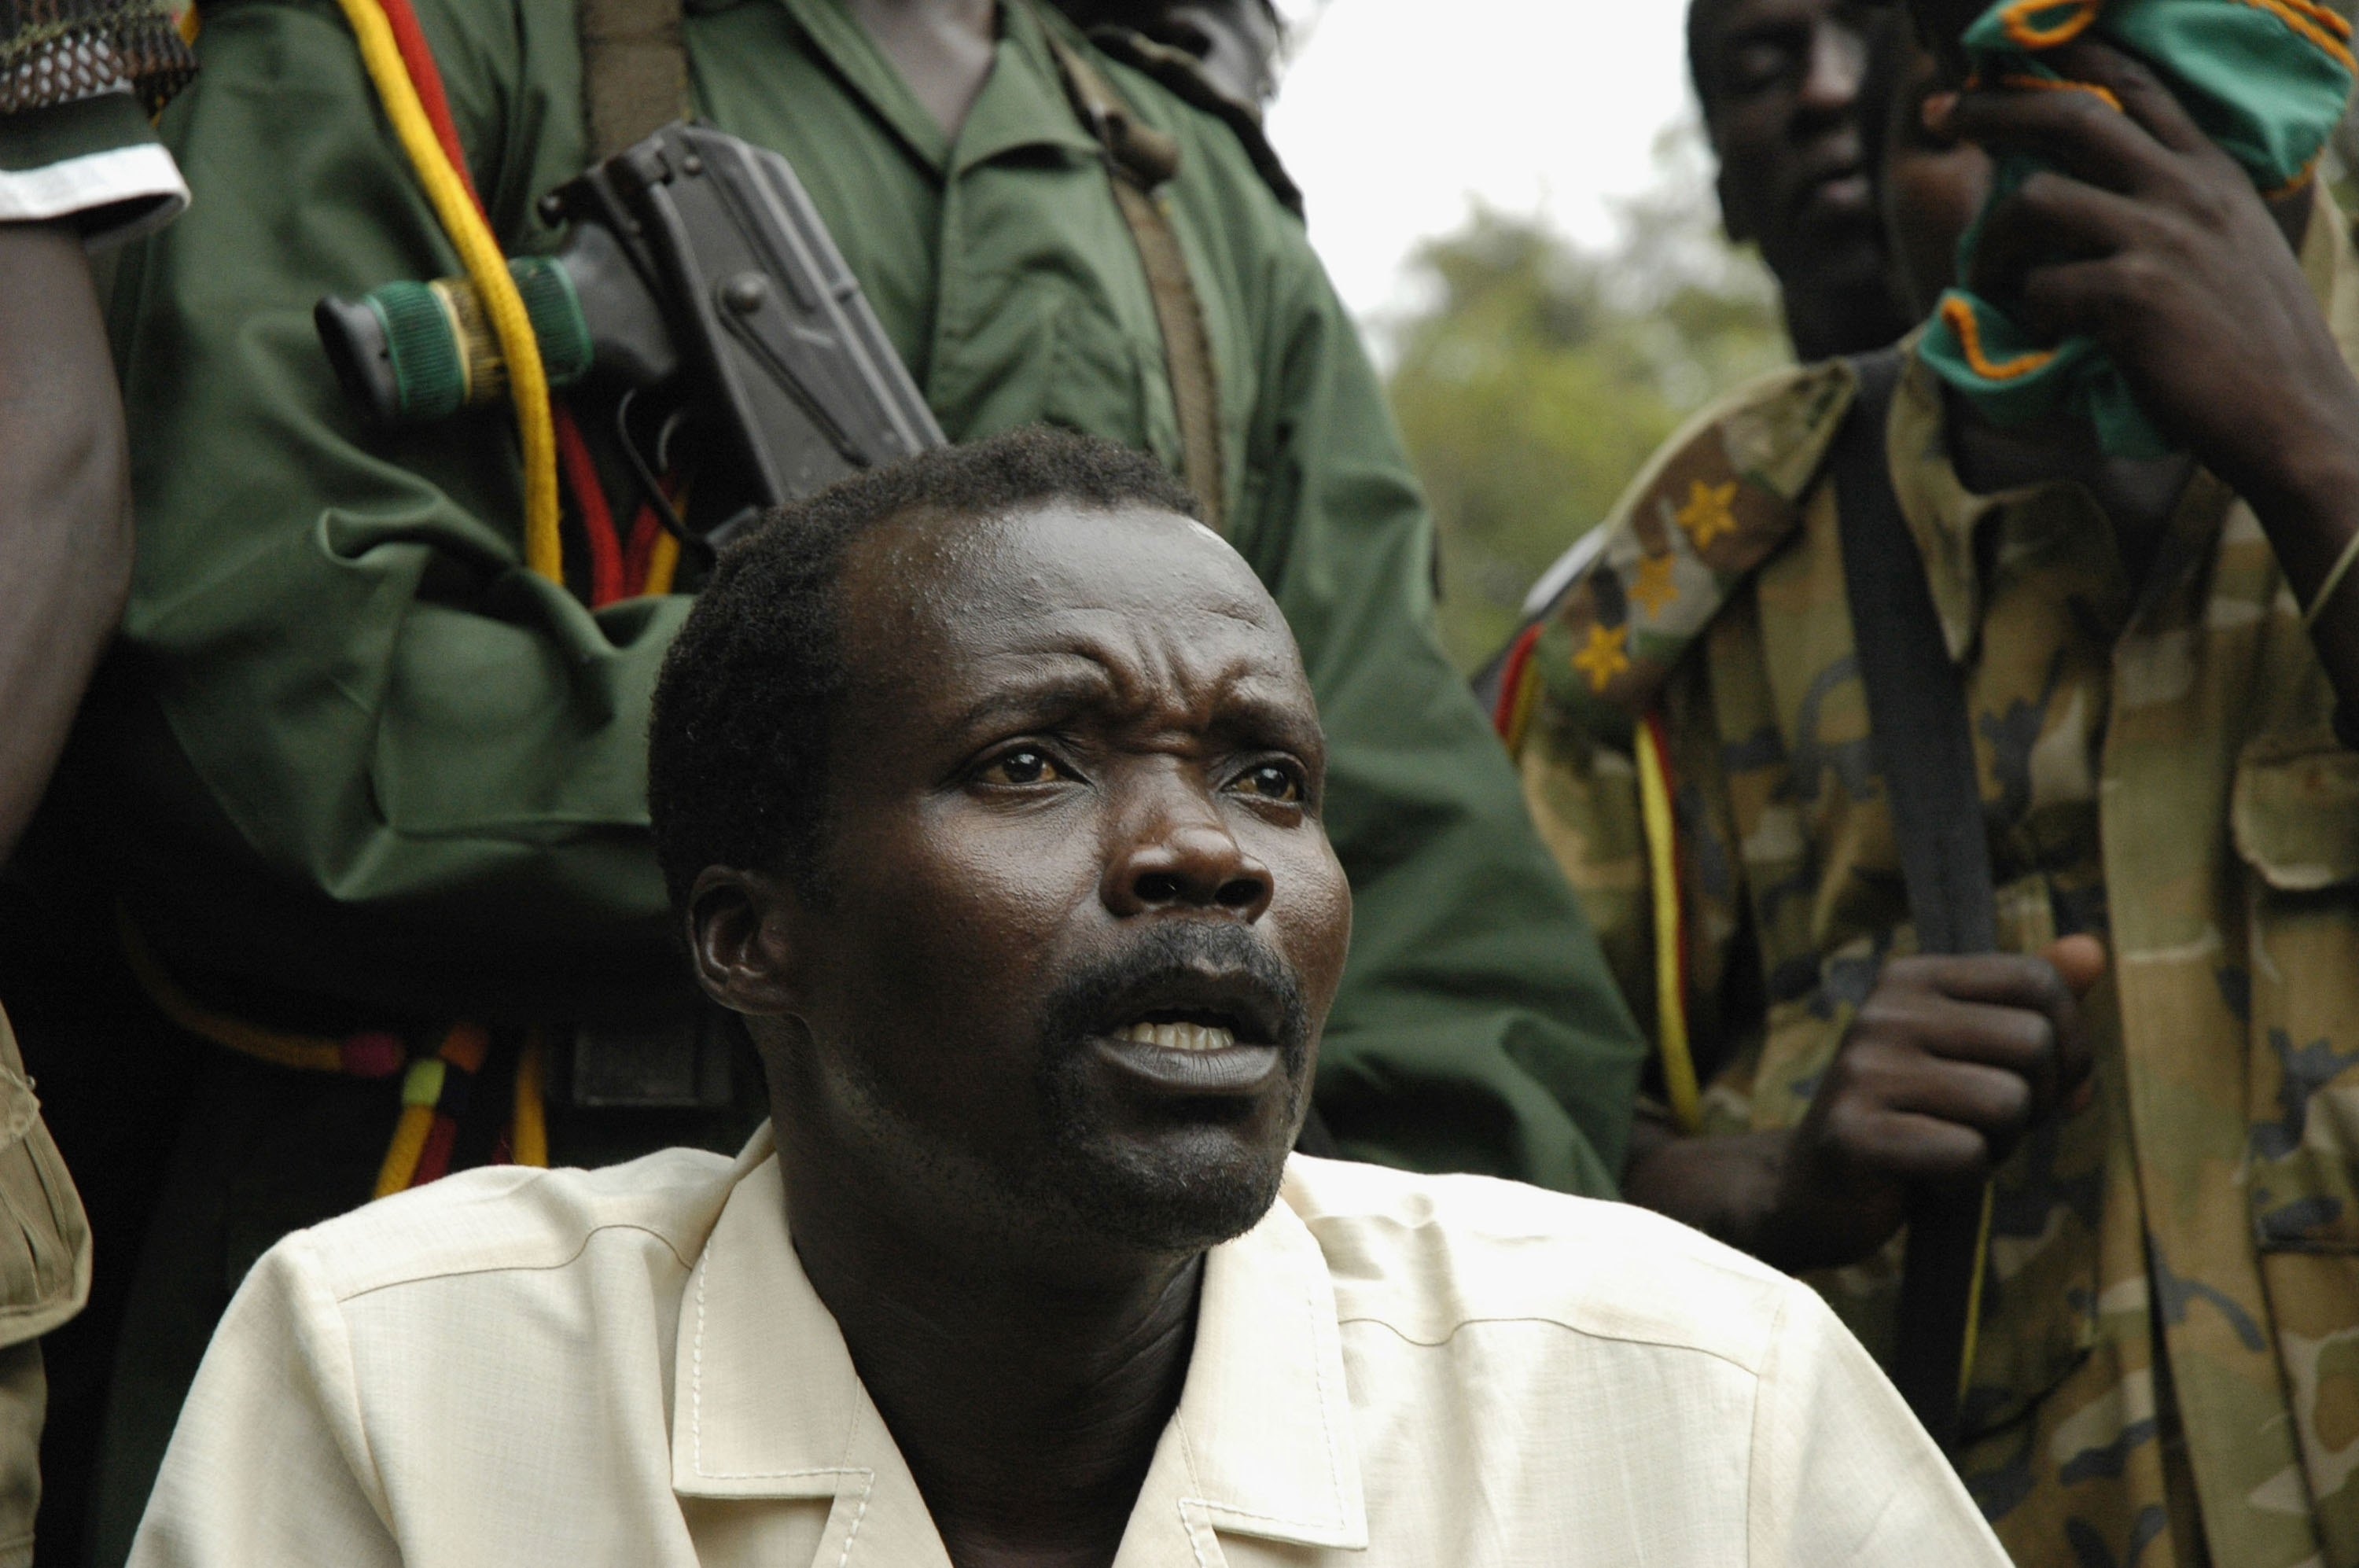 Joseph Kony, leader of the rebel group the Lord's Resistance Army makes a rare statement to the media during peace talks on Aug. 1, 2006 on the Congo-Sudan Border.